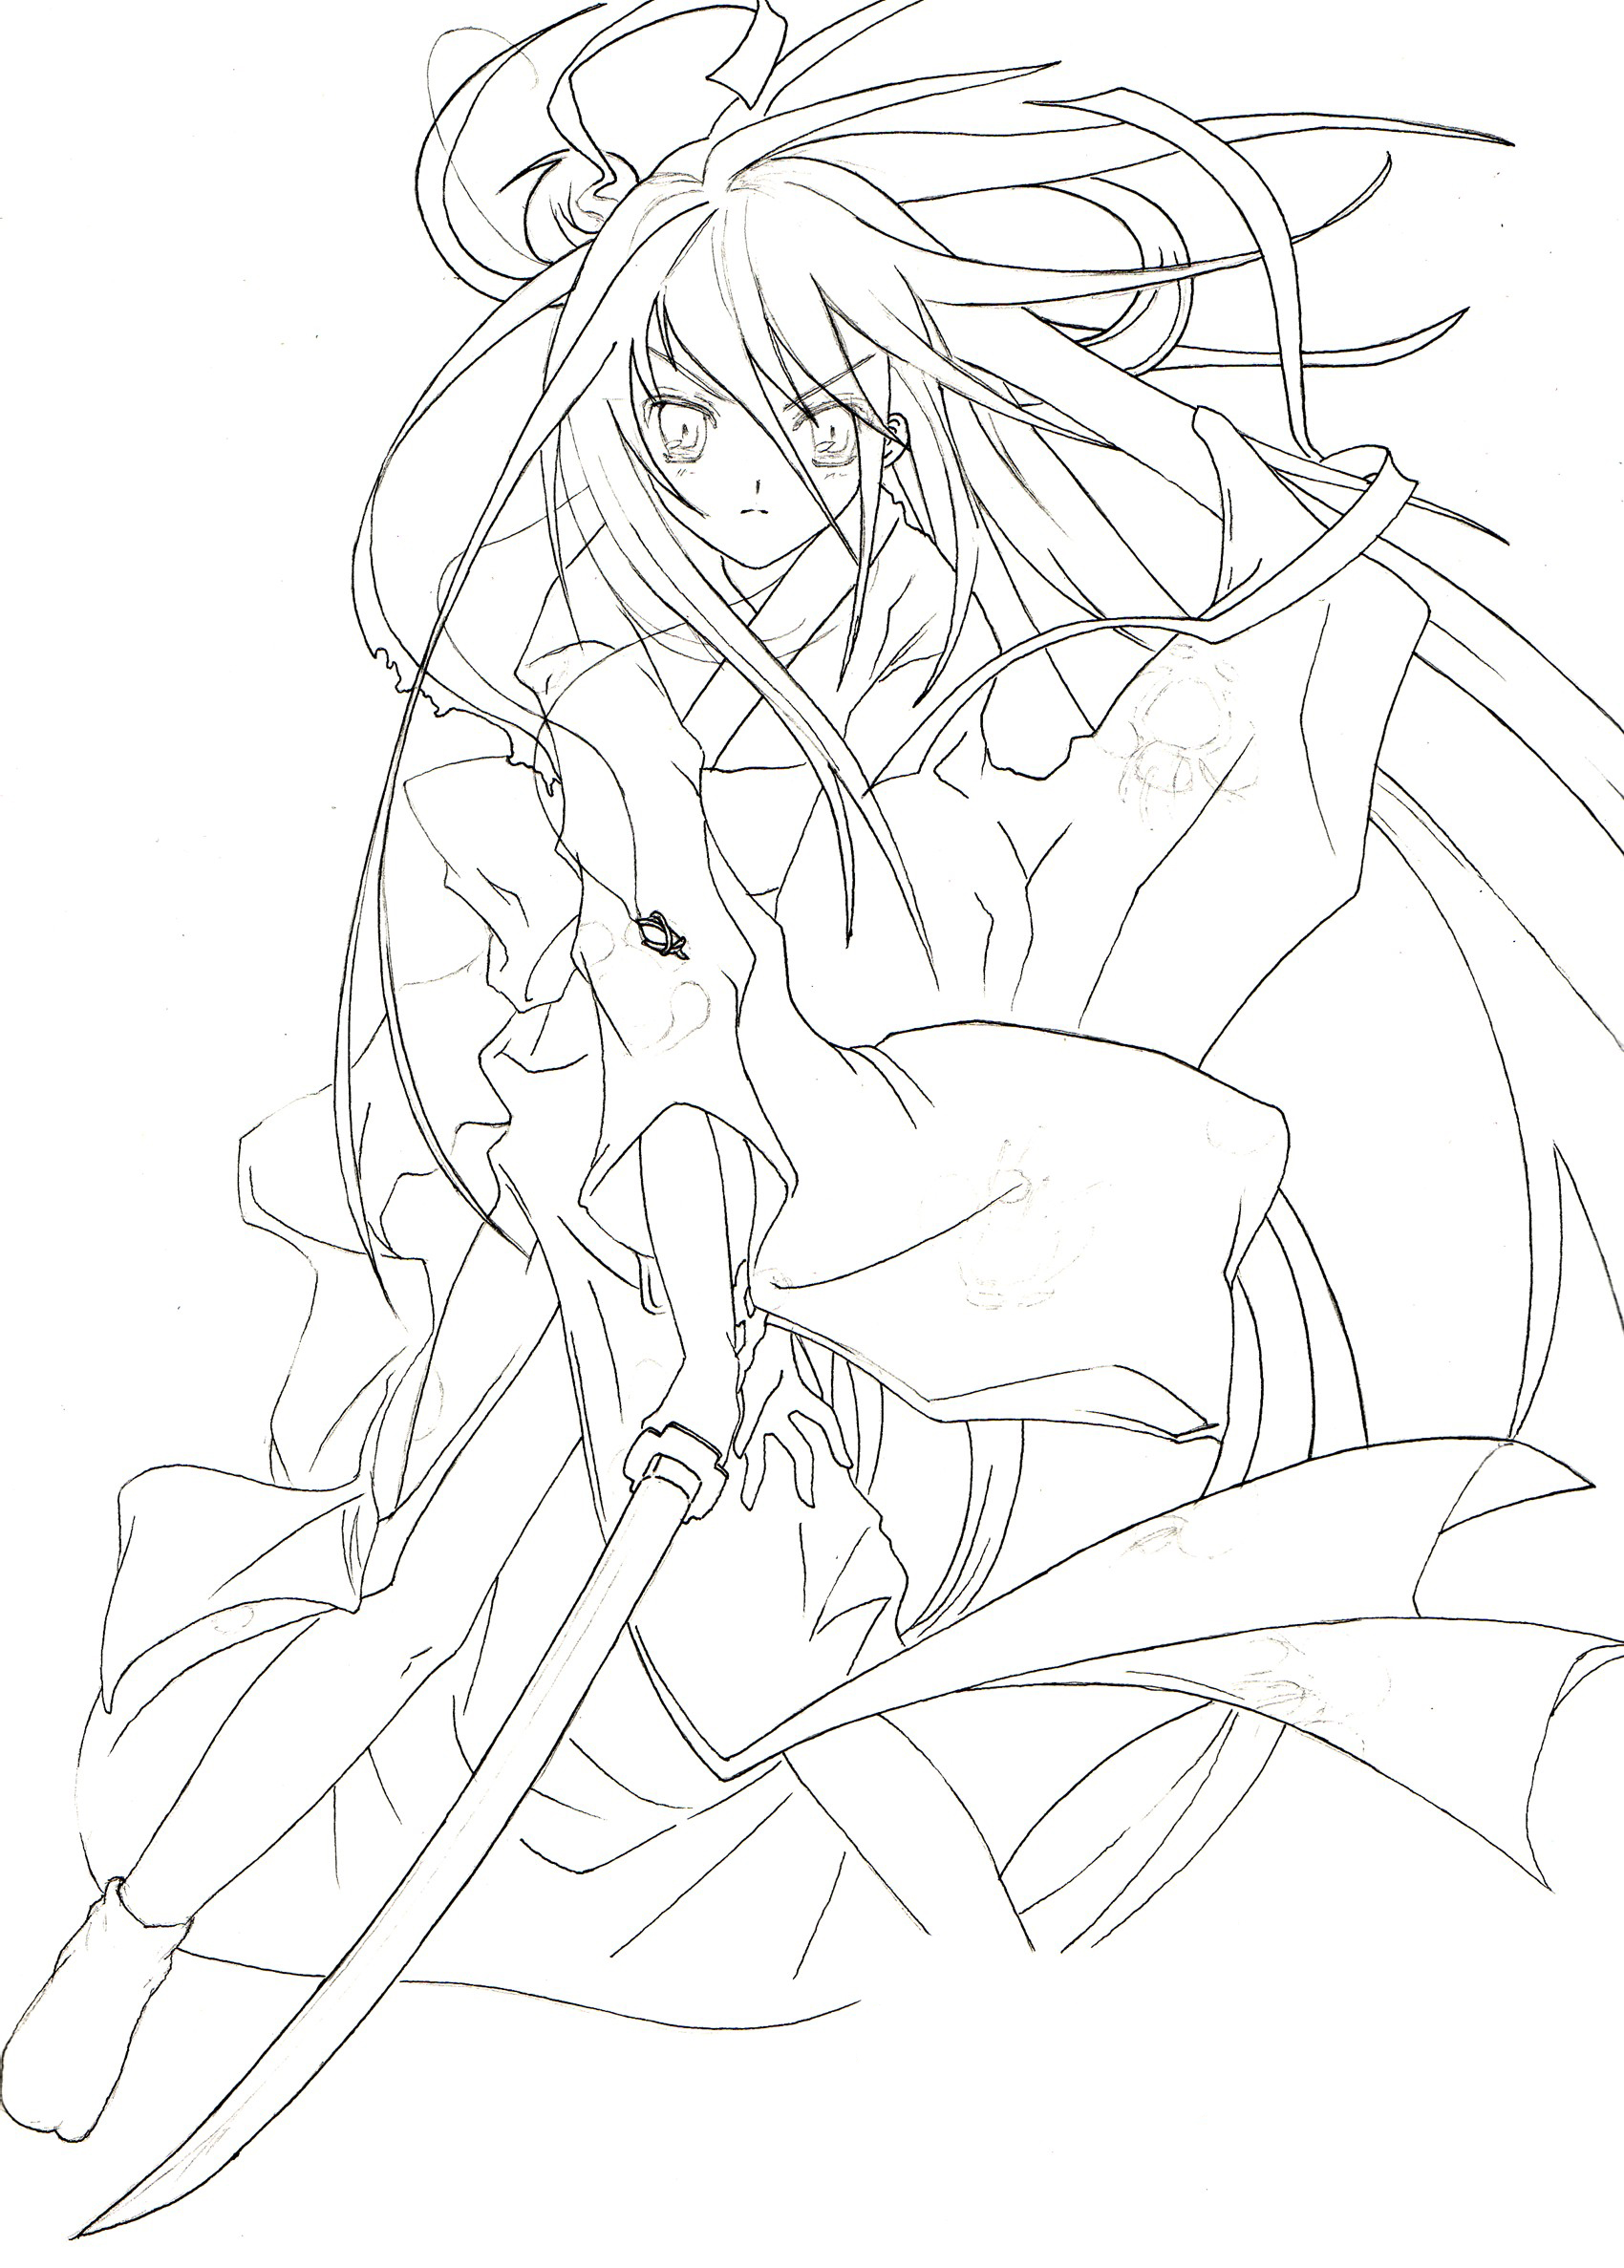 Shakugan No Shana II Colouring Sheets 3